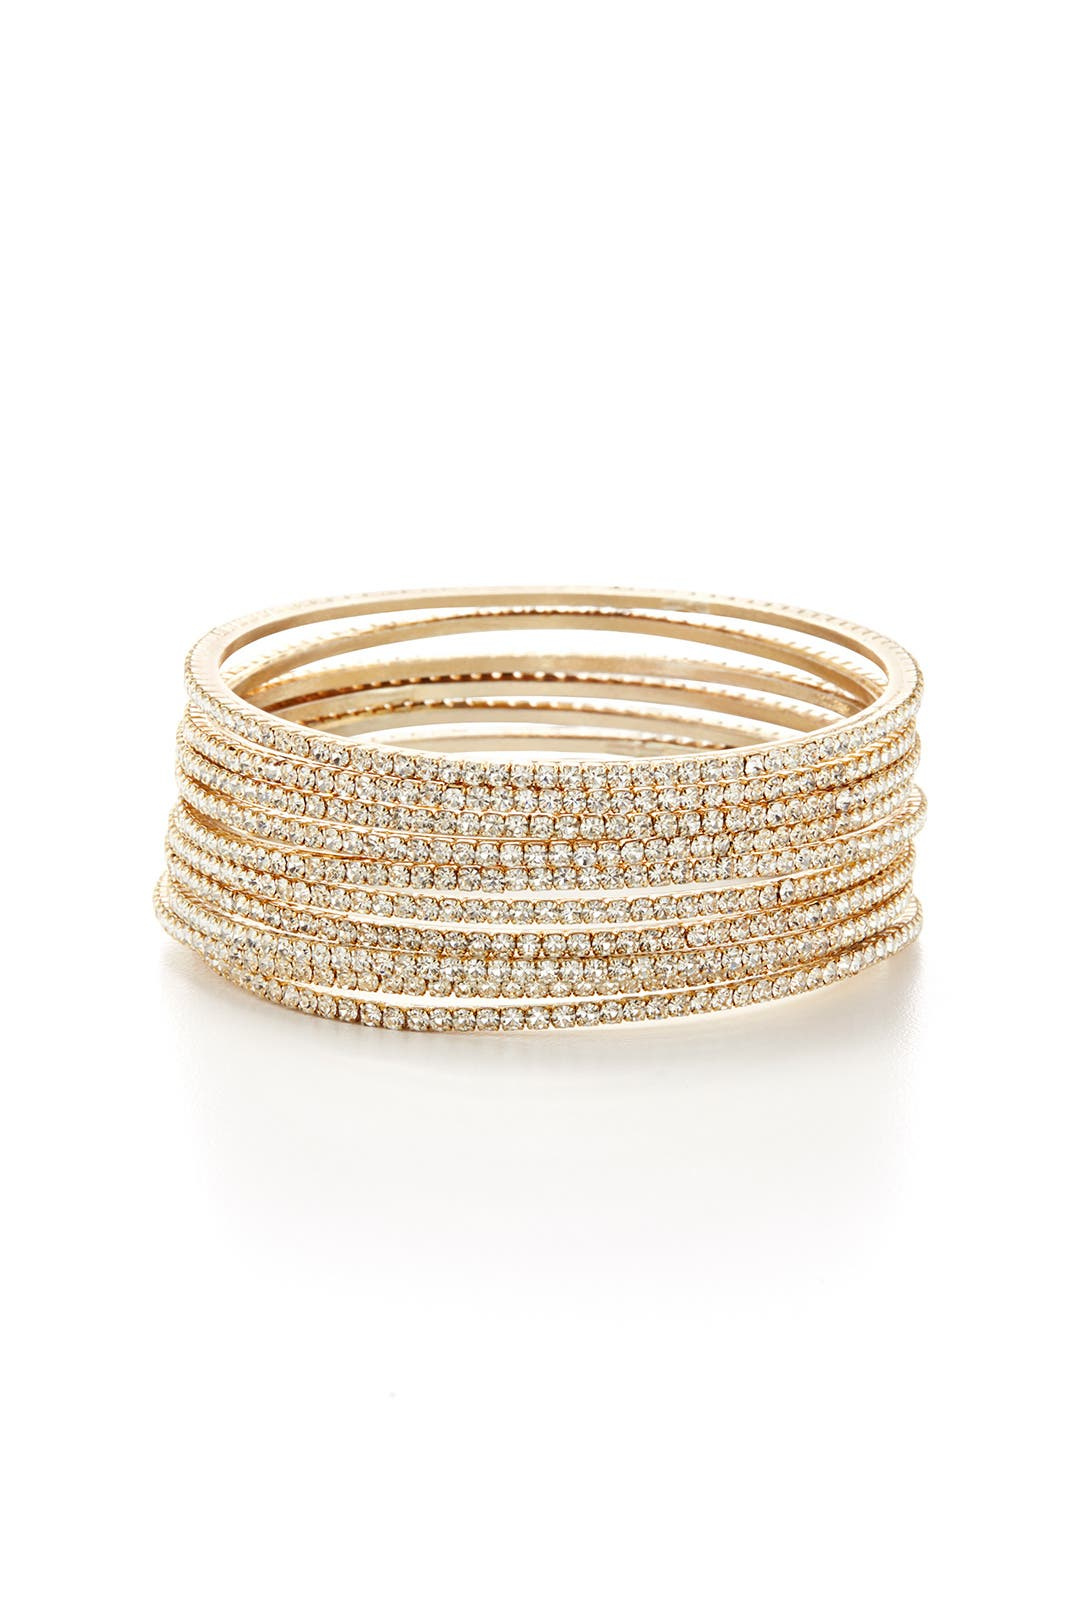 Gold Skyline Bangle Stack by Chamak by Priya Kakkar